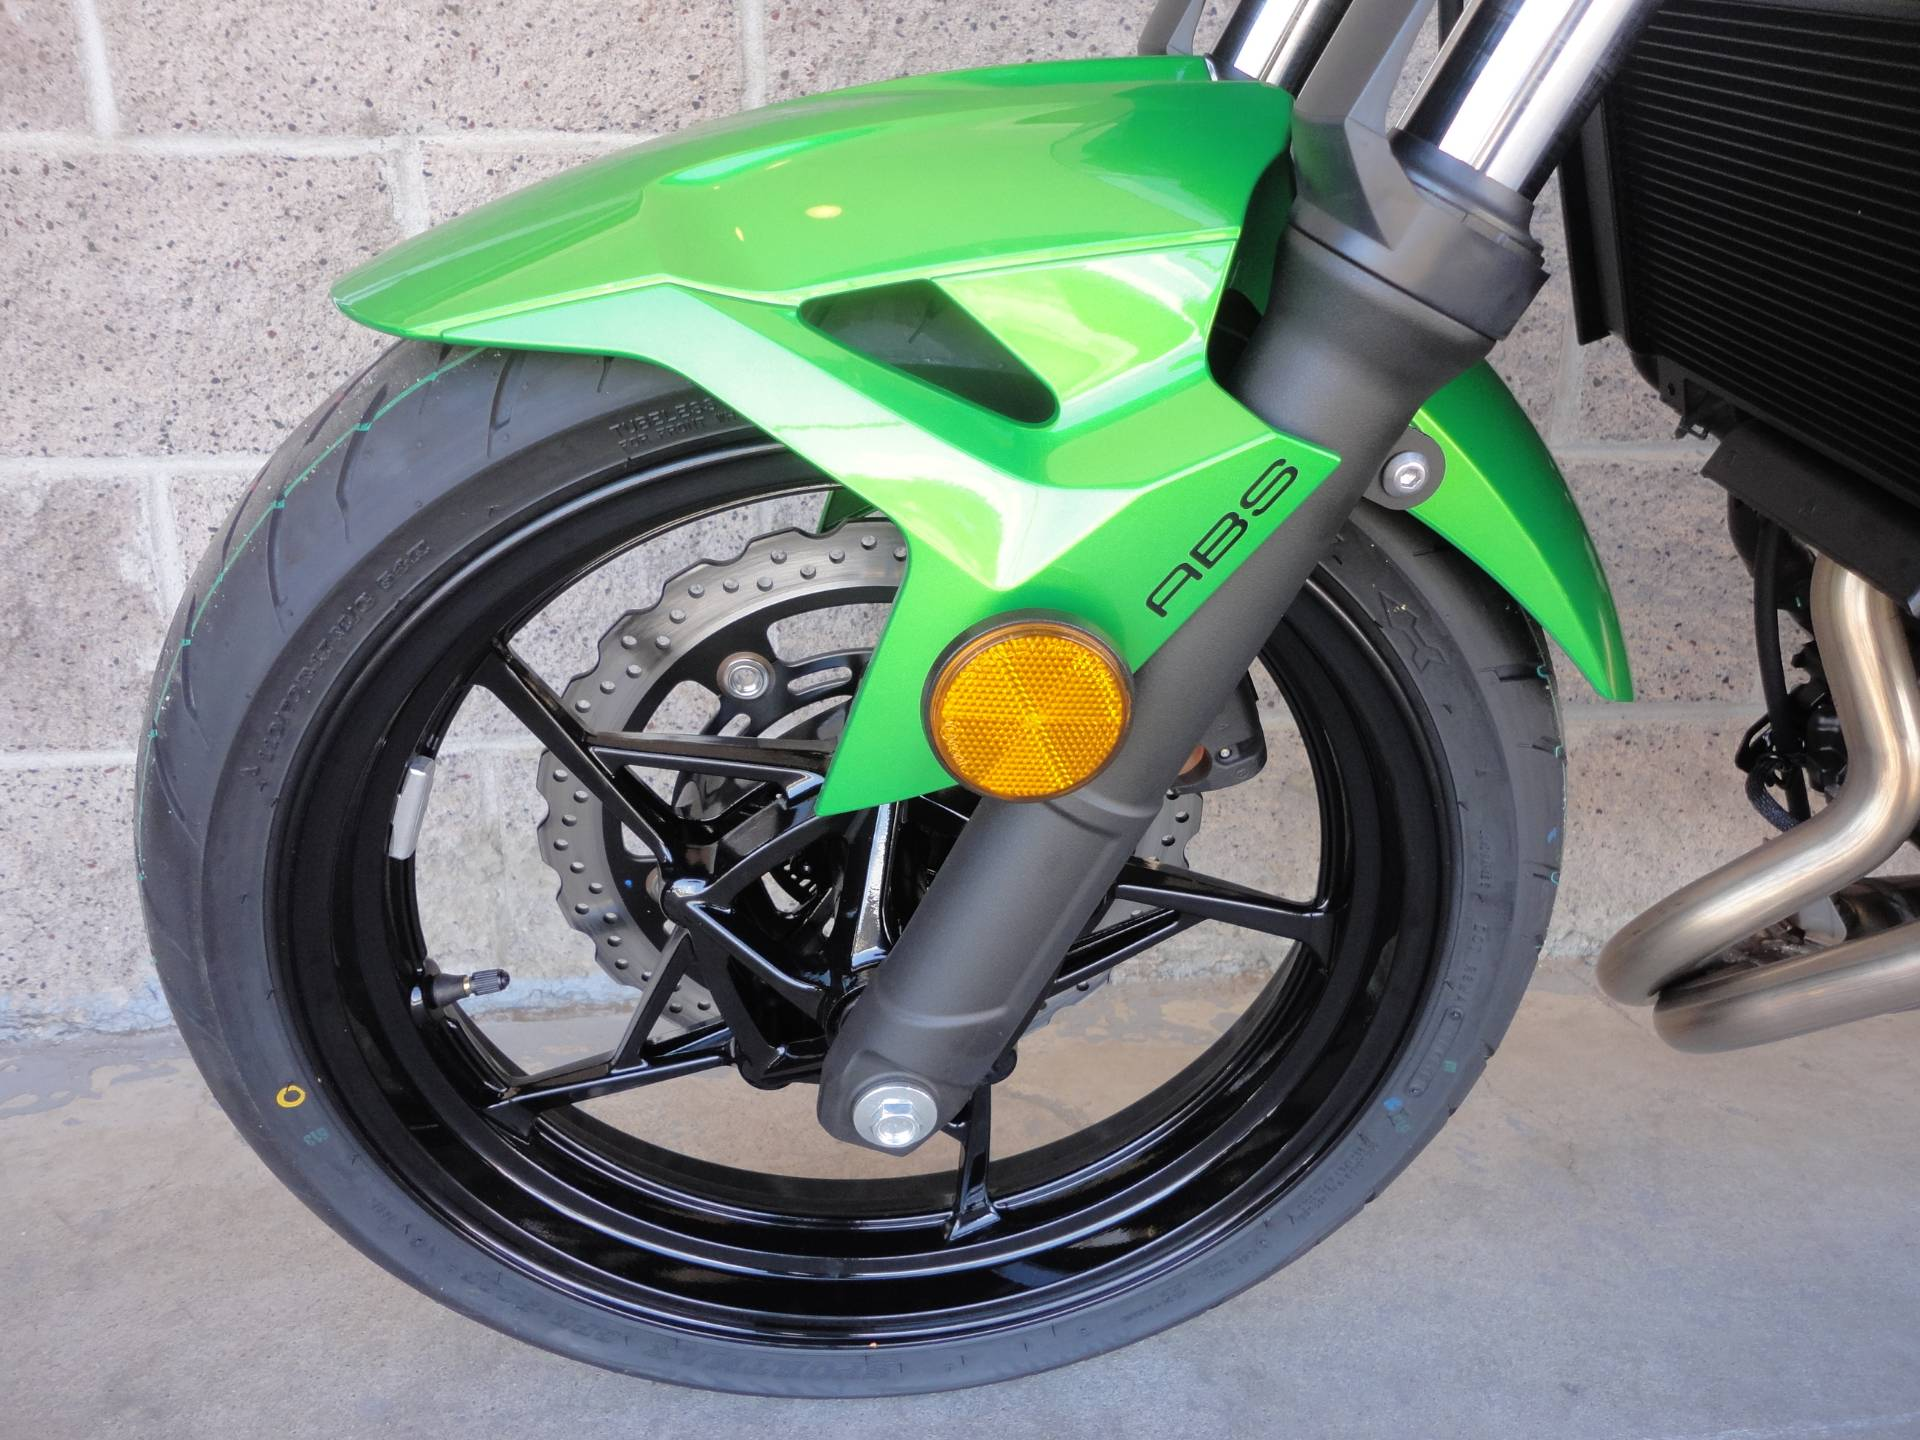 2019 Kawasaki Z400 ABS in Denver, Colorado - Photo 4